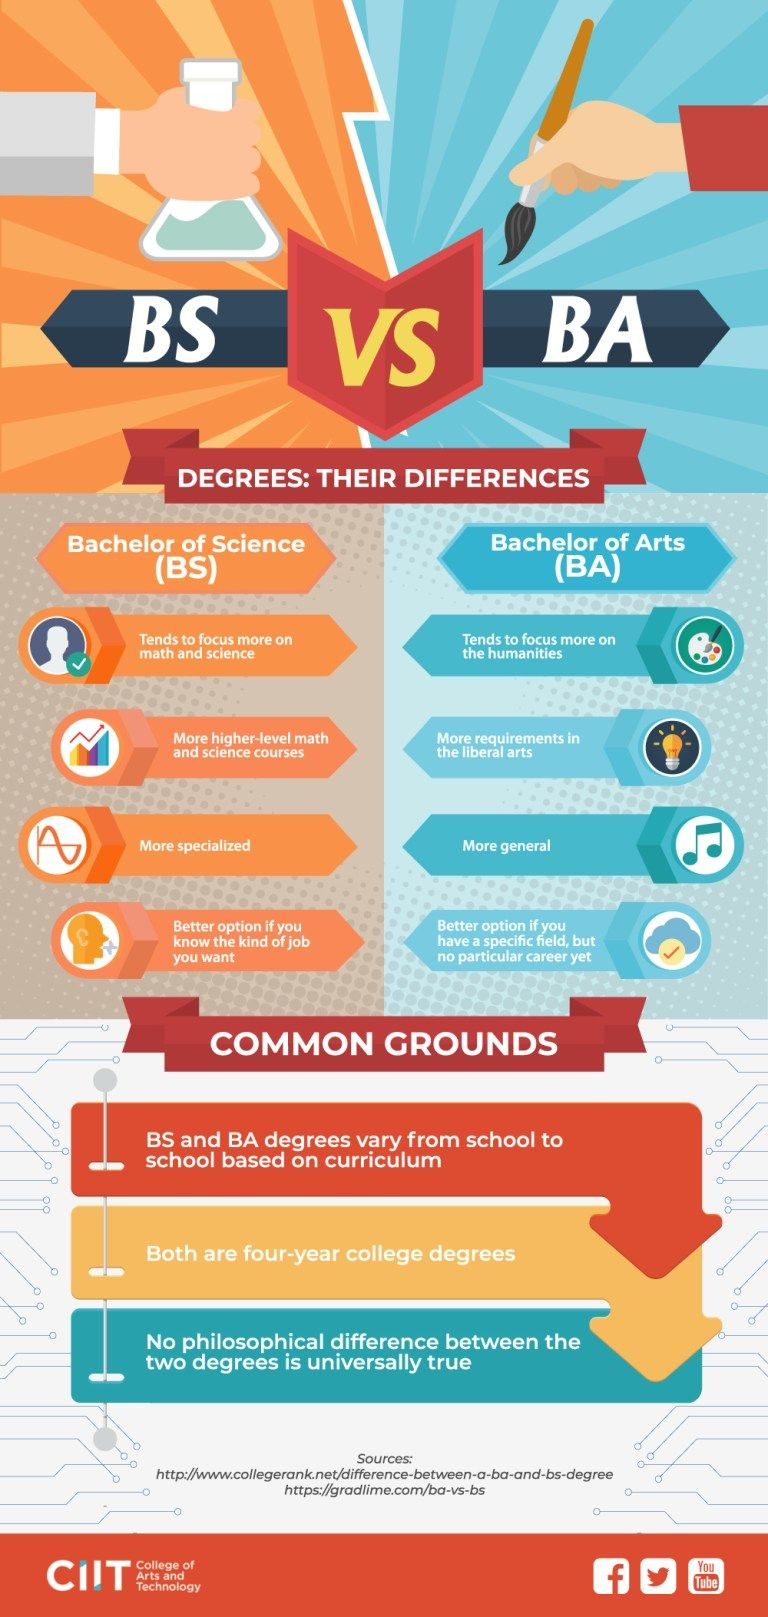 Bs Vs Ba The Differences Of The Two Bachelor S Degrees For K 12 Graduates Bachelor Of Science Bachelor Of Arts Psychology Degree